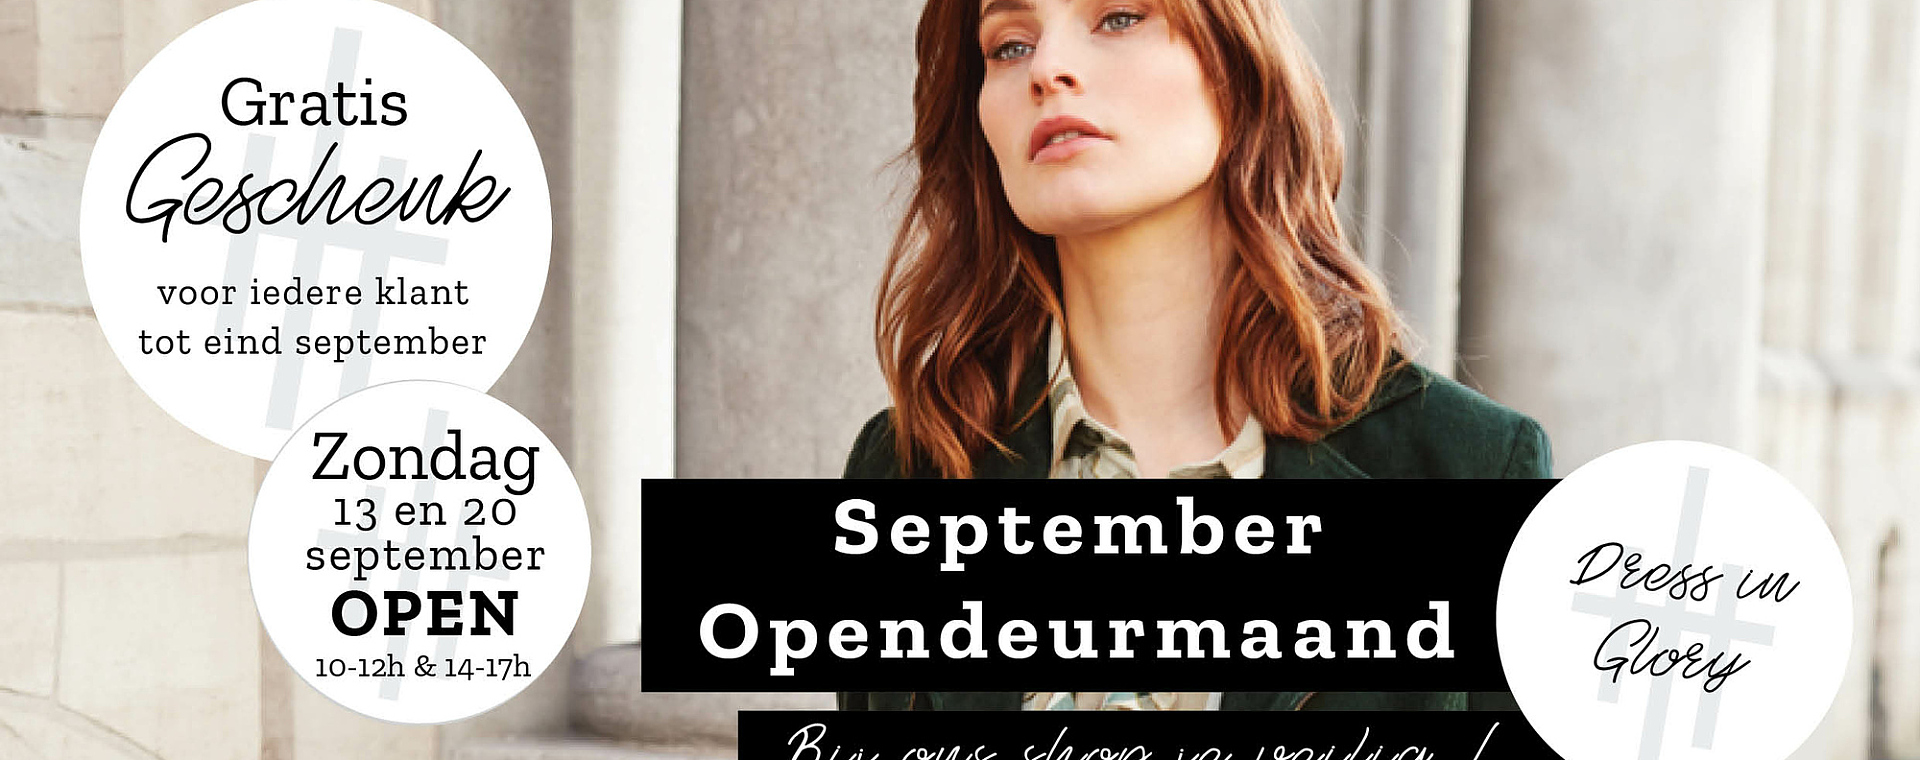 september opendeur grootd